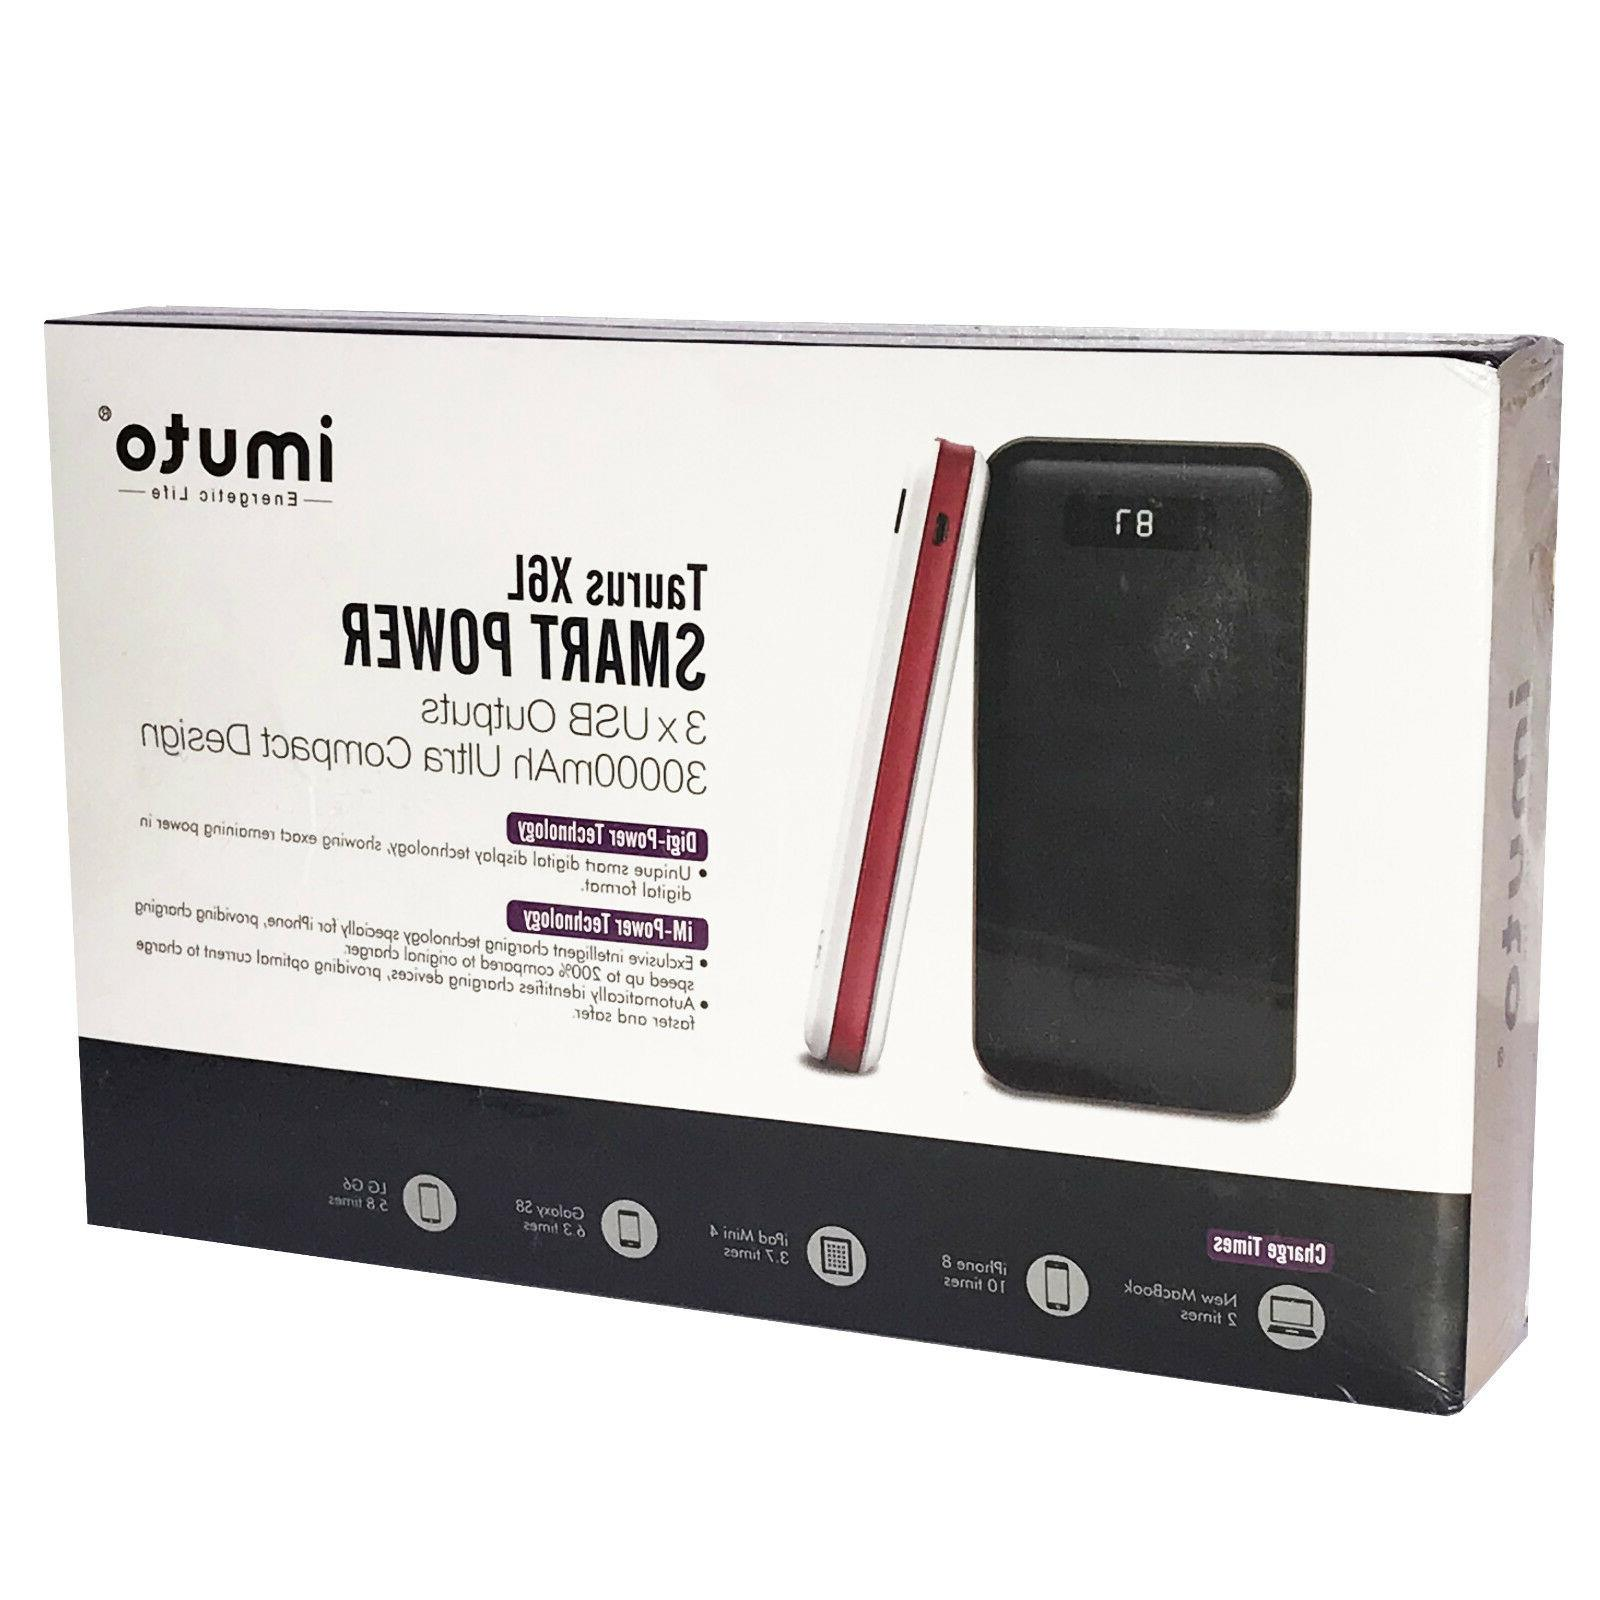 iMuto 30000 CHARGER 3-PORT USB POWER Quick Charging